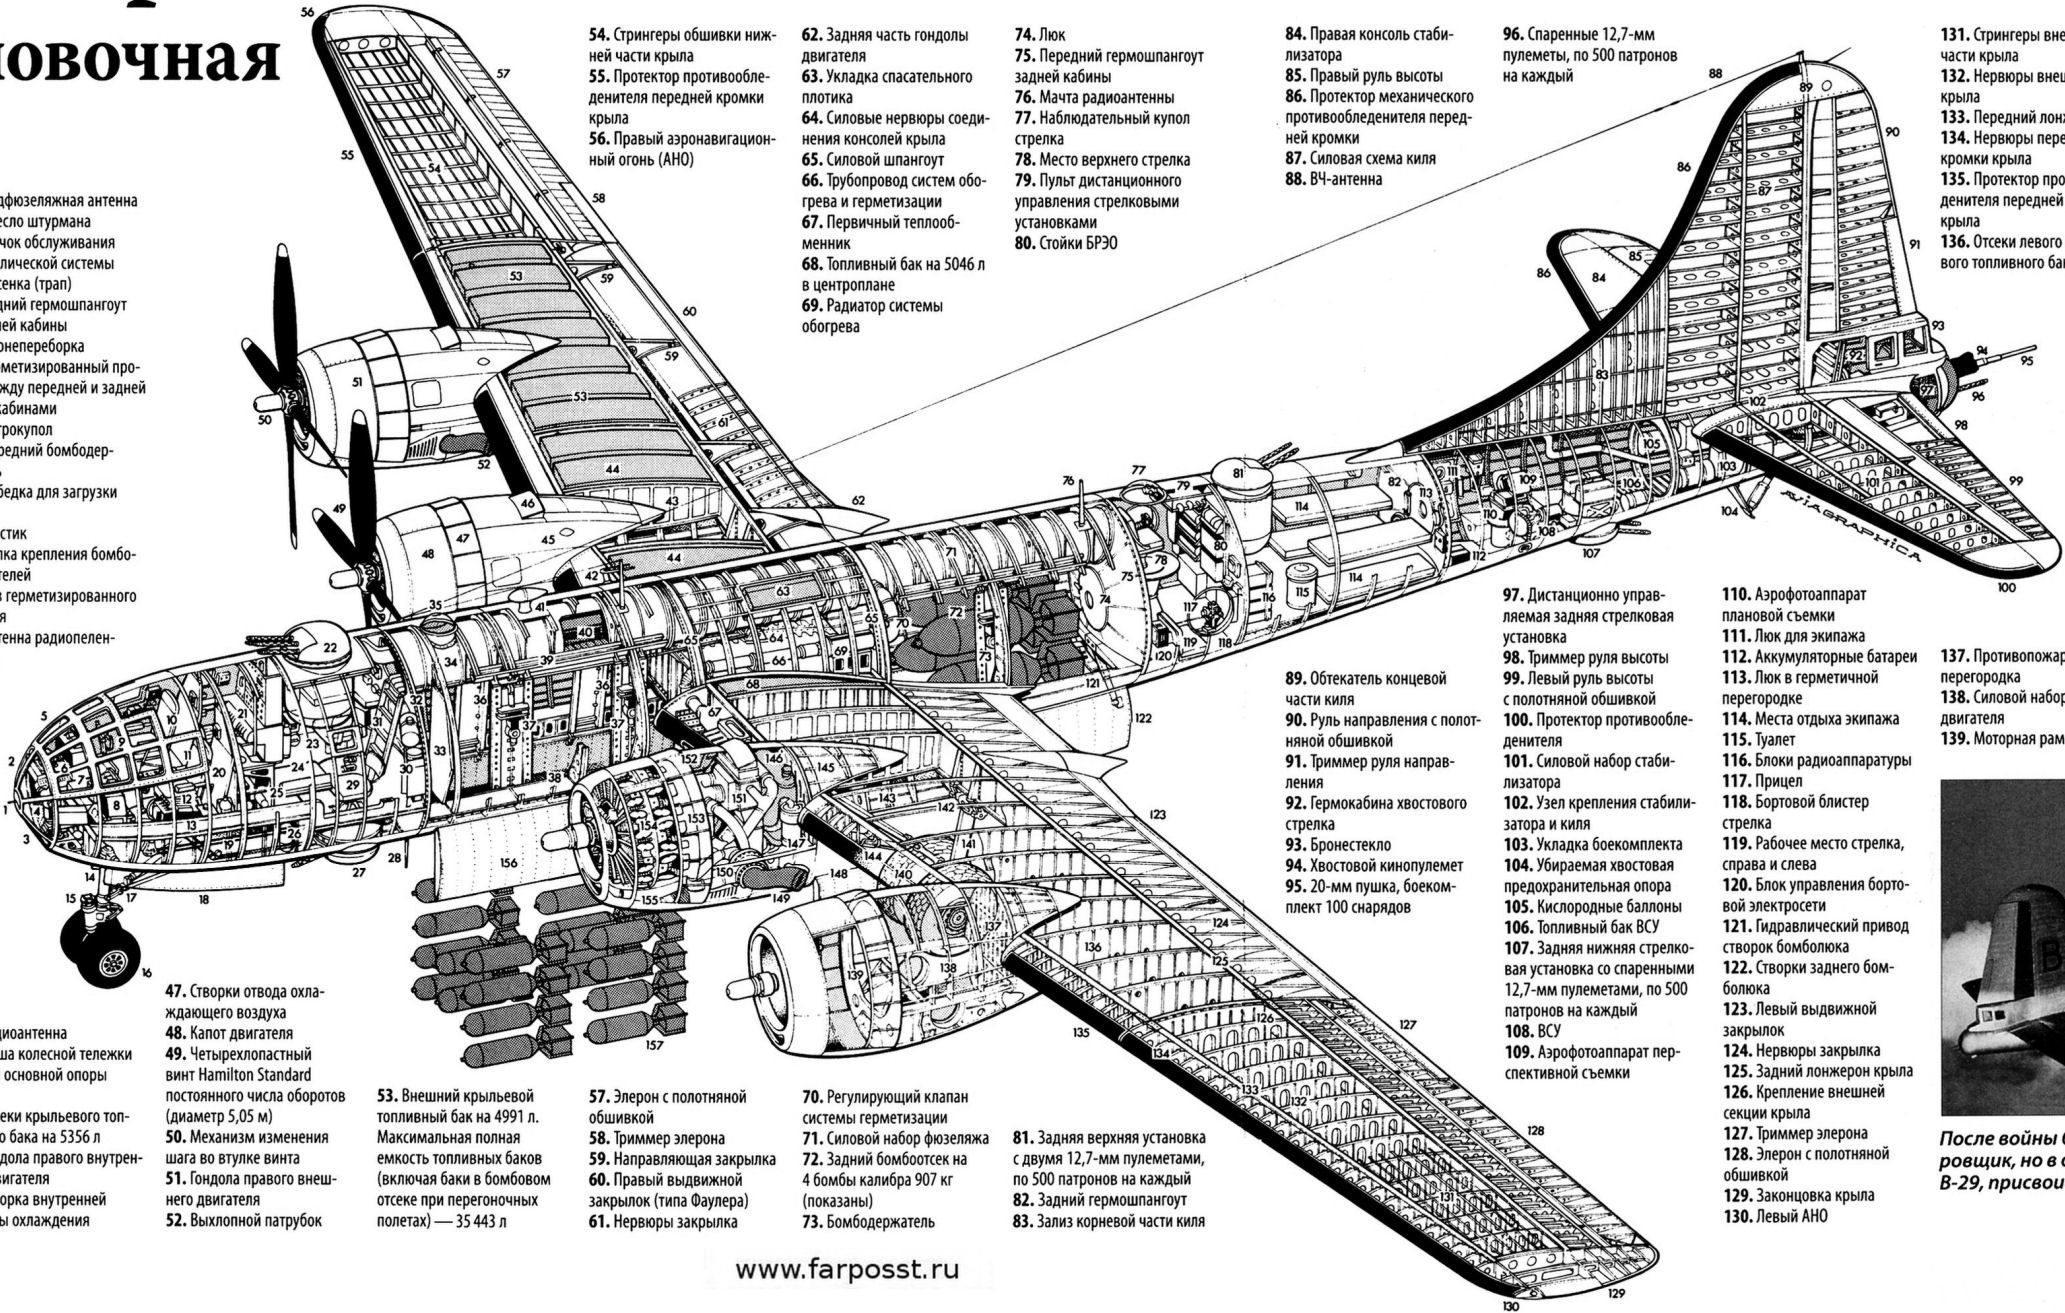 B 29 Engine Diagram - 7.11.ms-krankenfahrten.de •